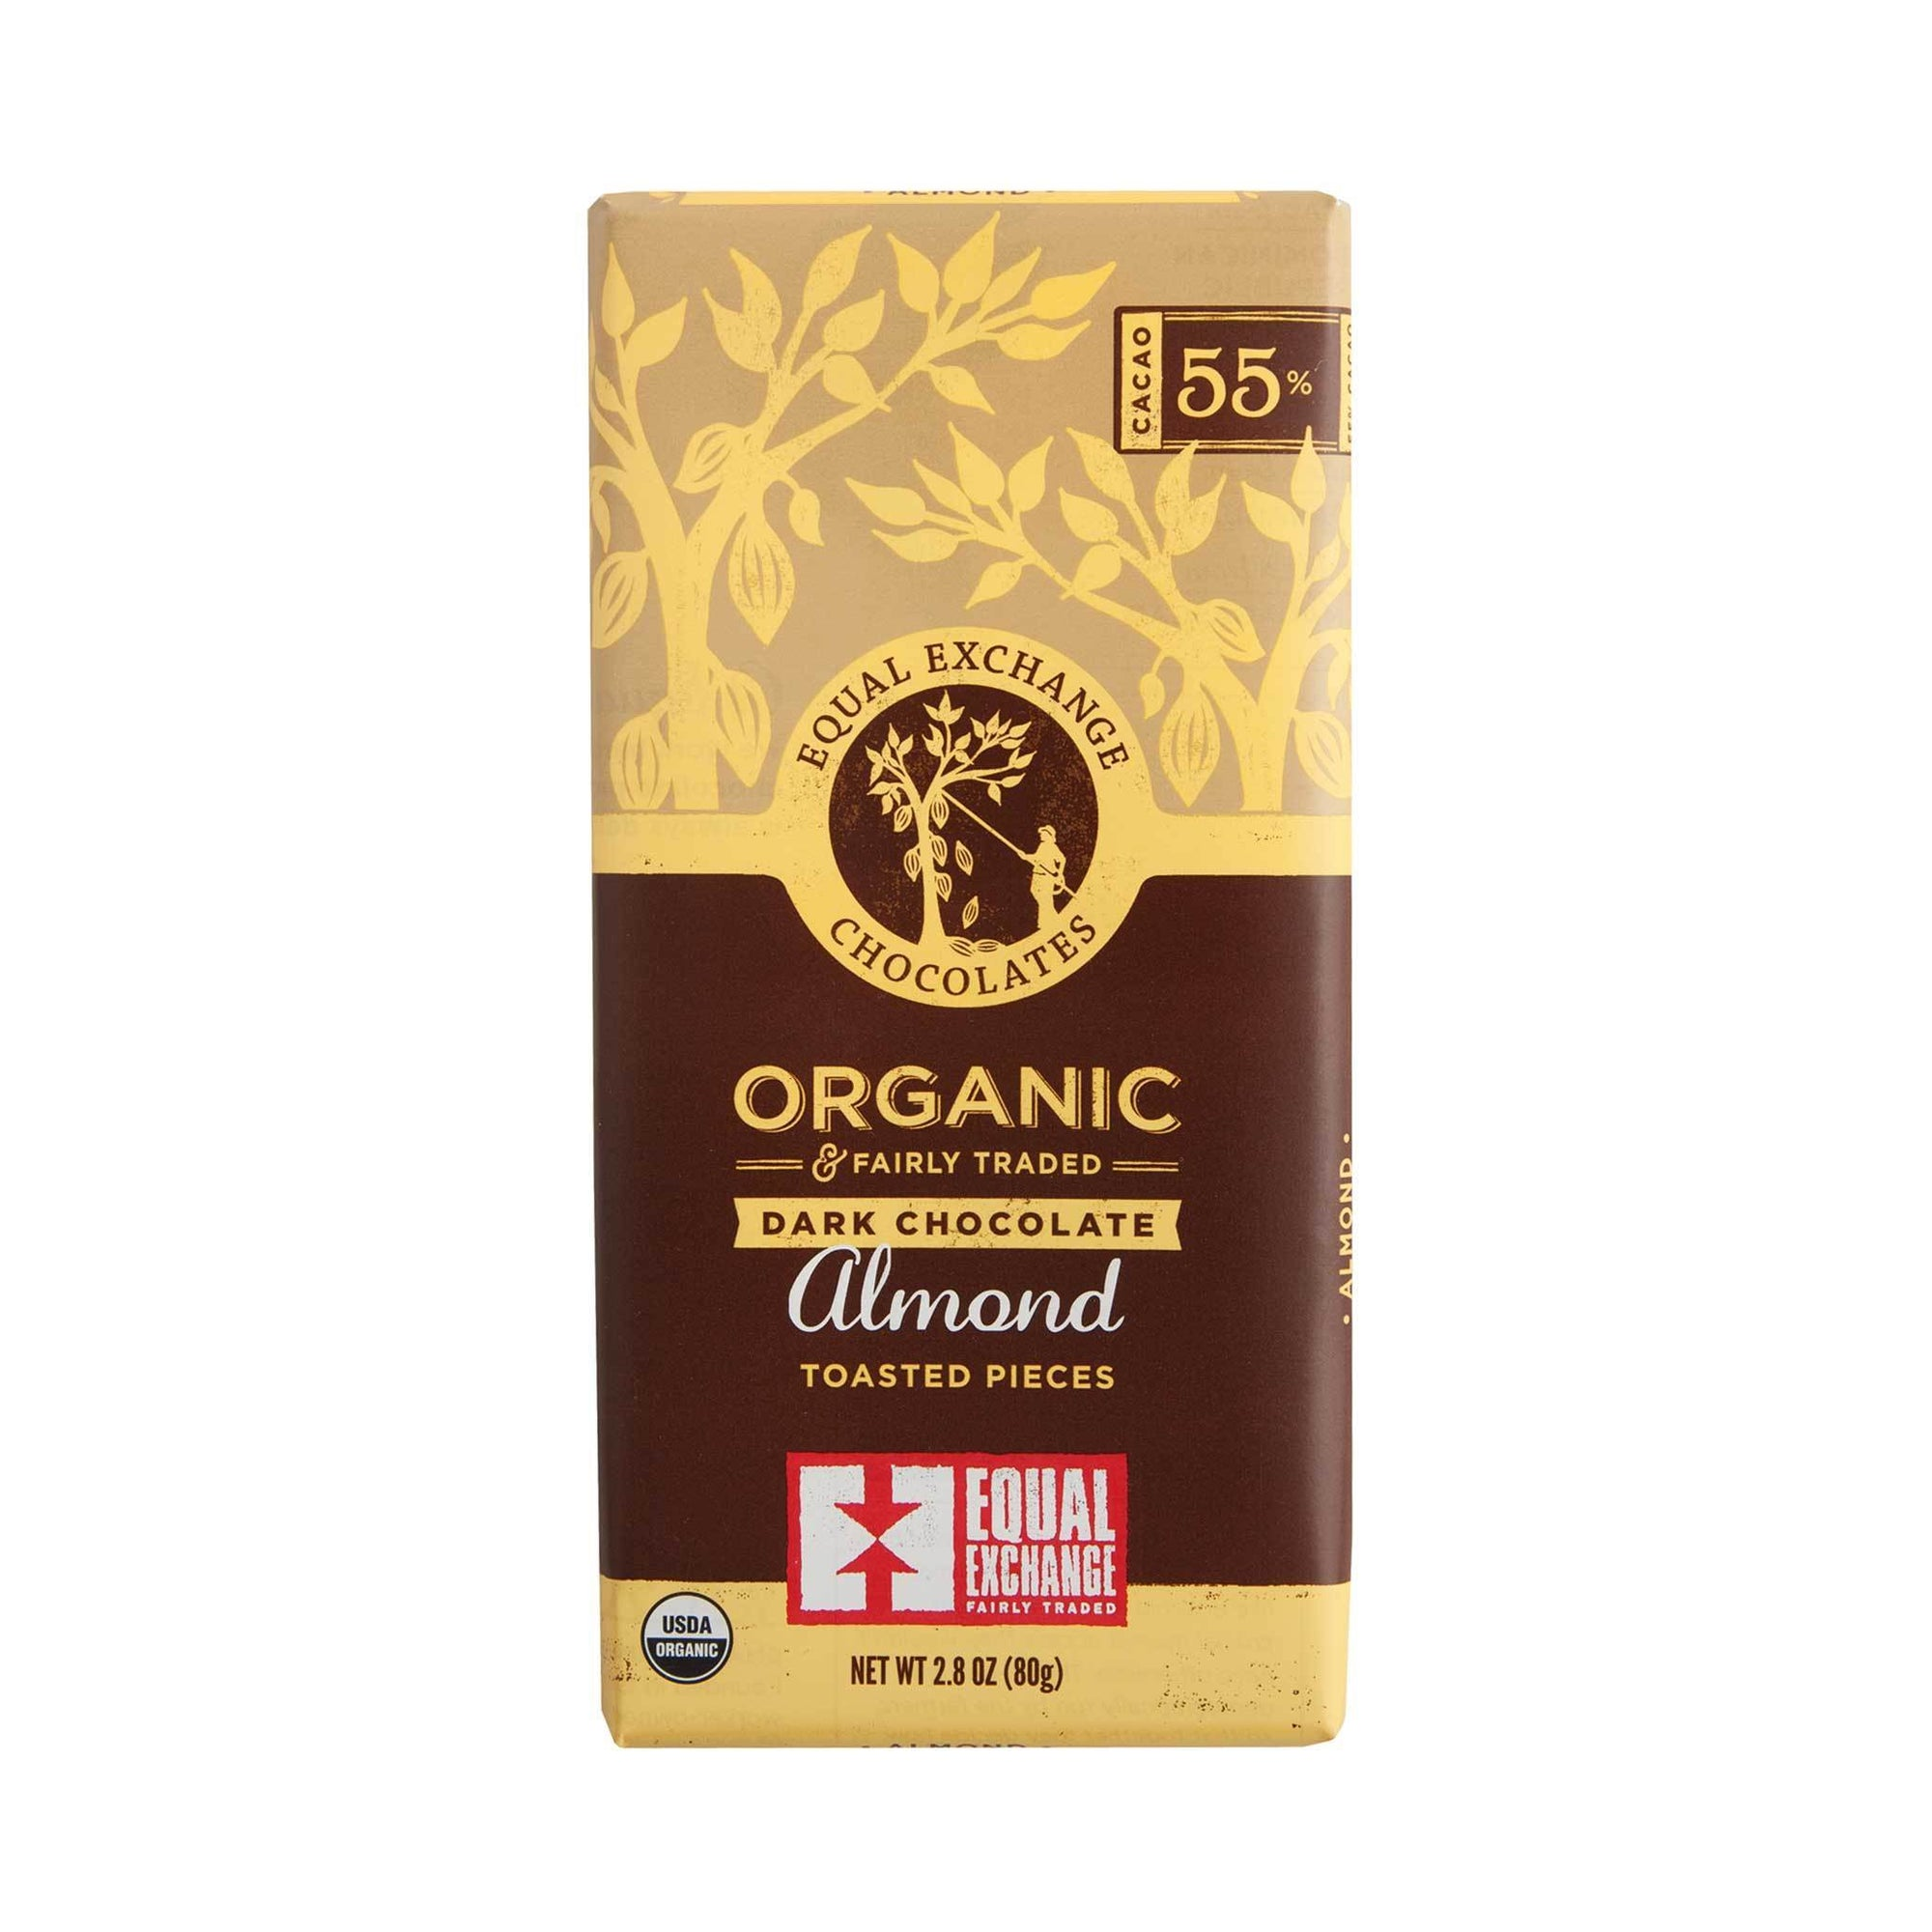 Dark Almond Organic Chocolate - Equal Exchange - 2.8 oz